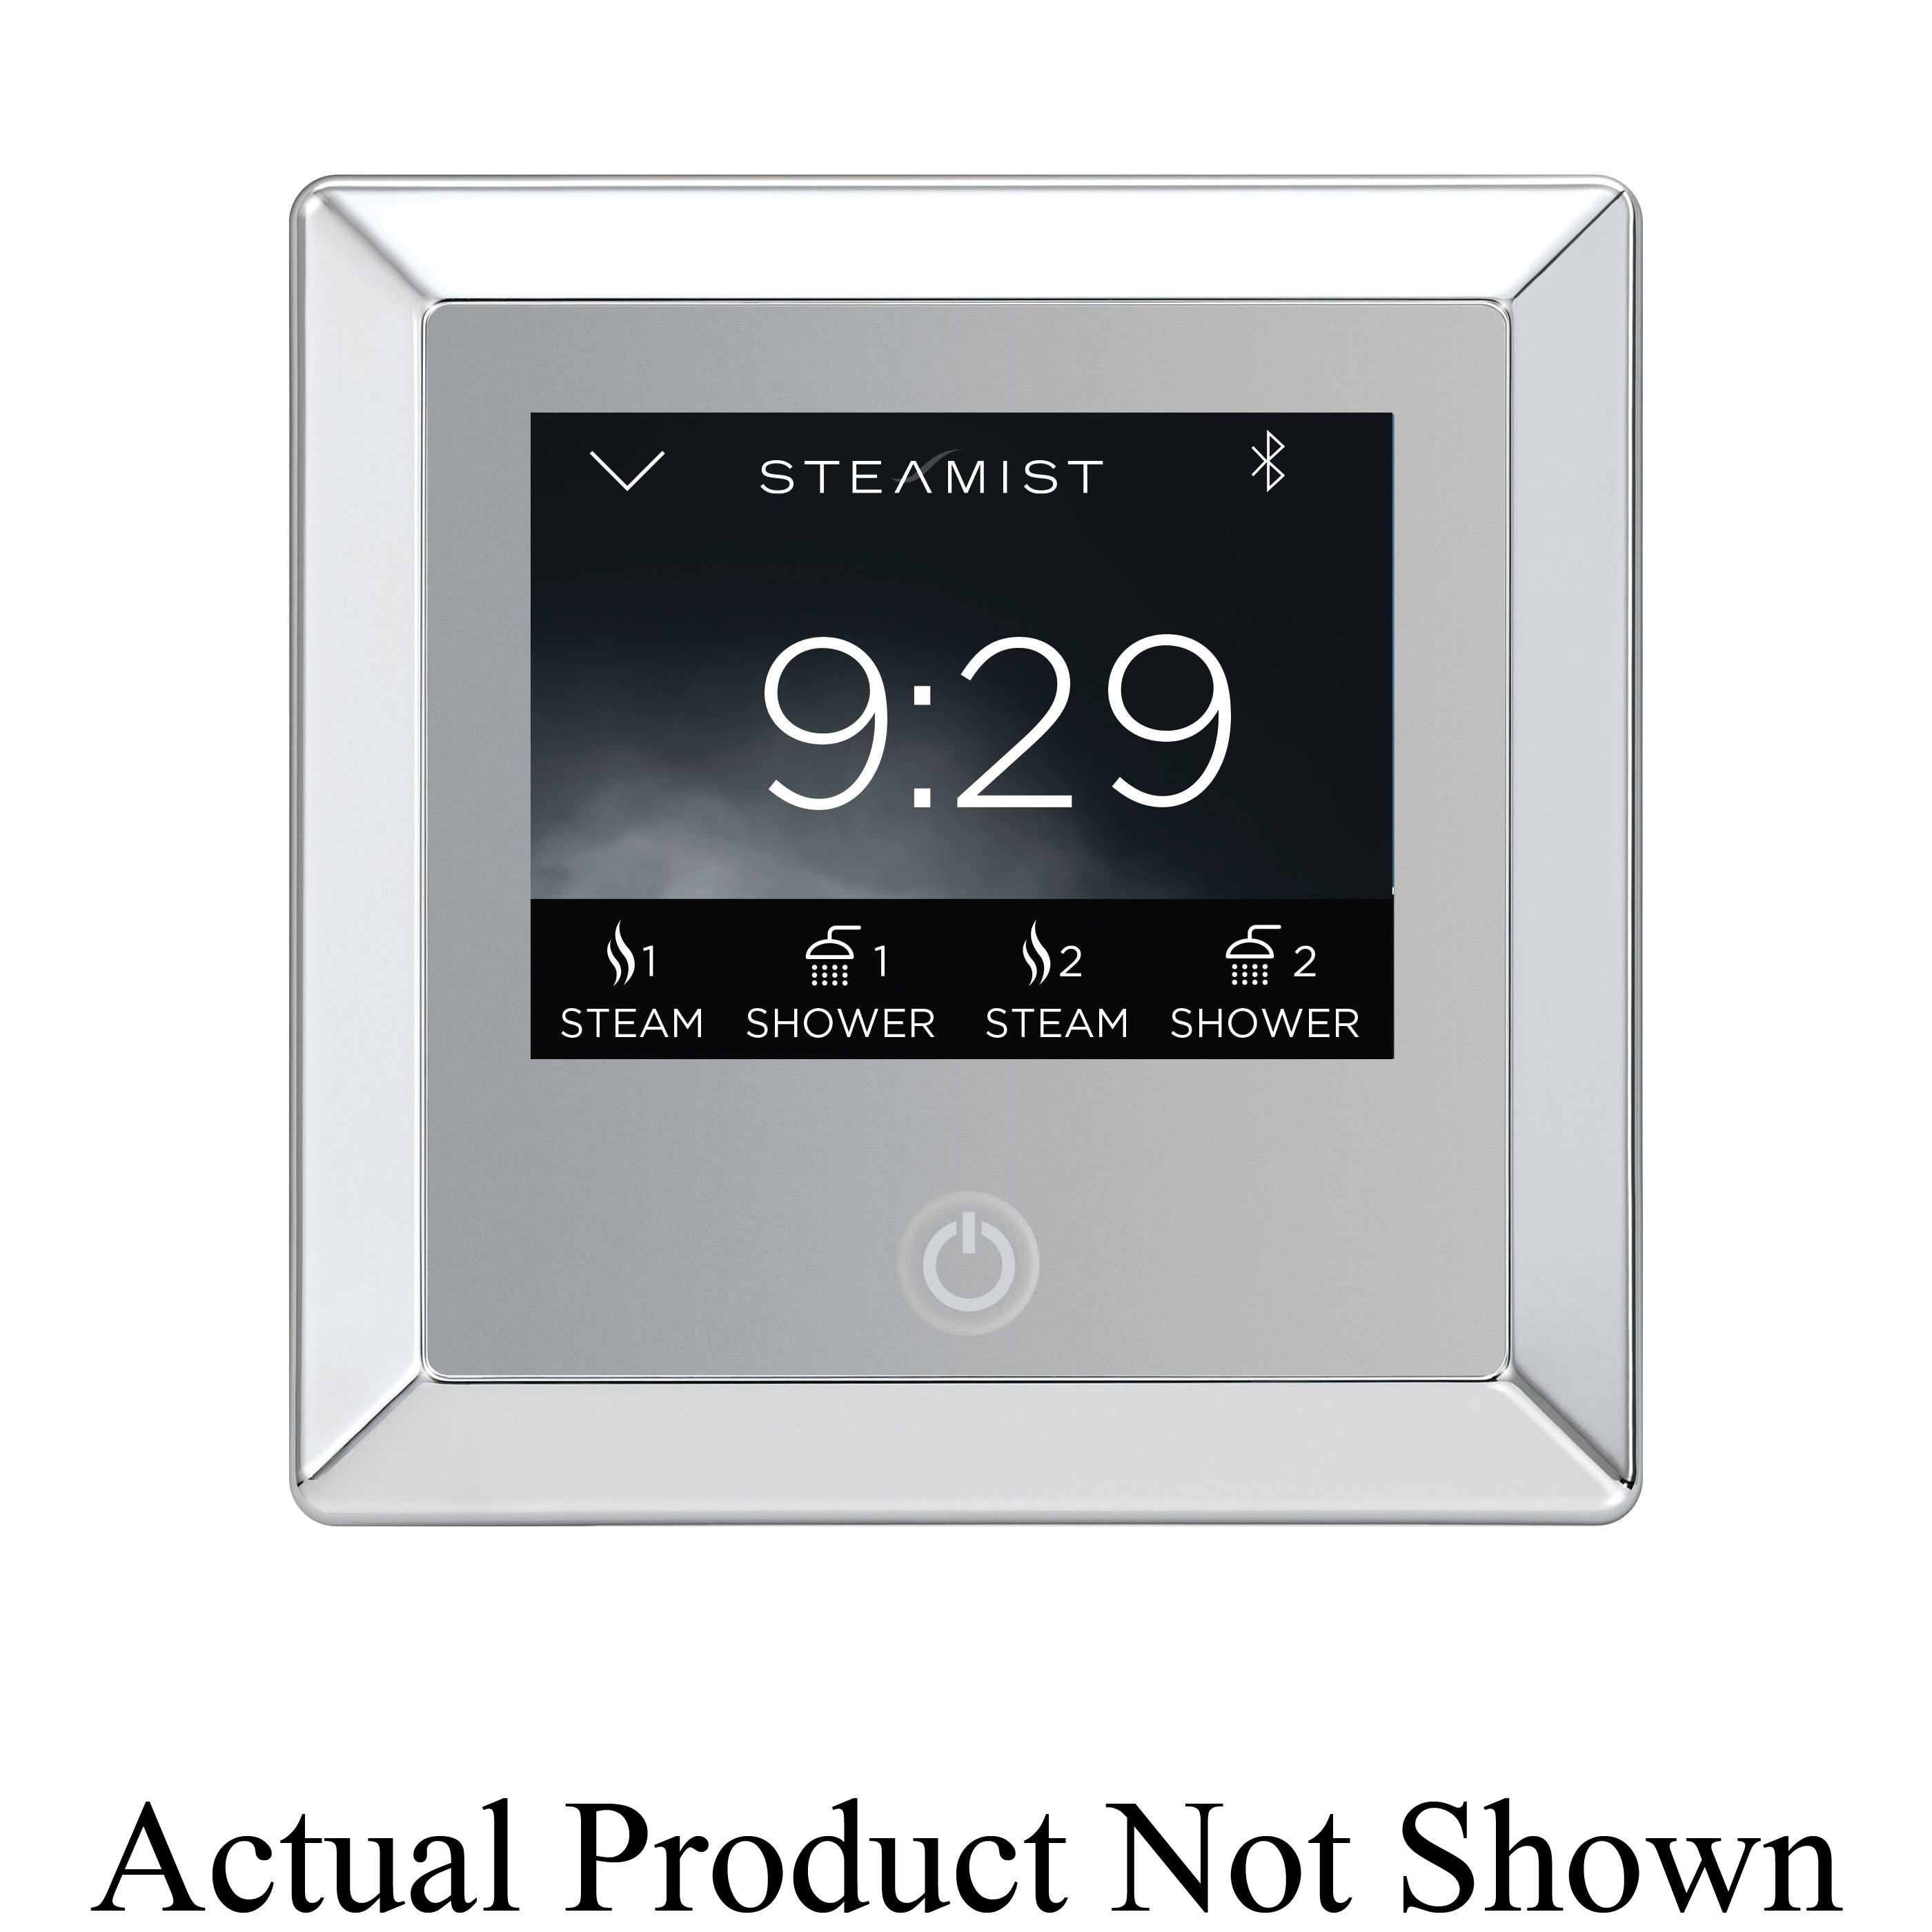 Steamist® 450-PG TSC-450 Contemporary Steambath Control With Wi-Fi, Total Sense™, Digital Display, 50 to 125 deg F, Polished Gold, For Use With: Model TSG Steam Generator, Domestic